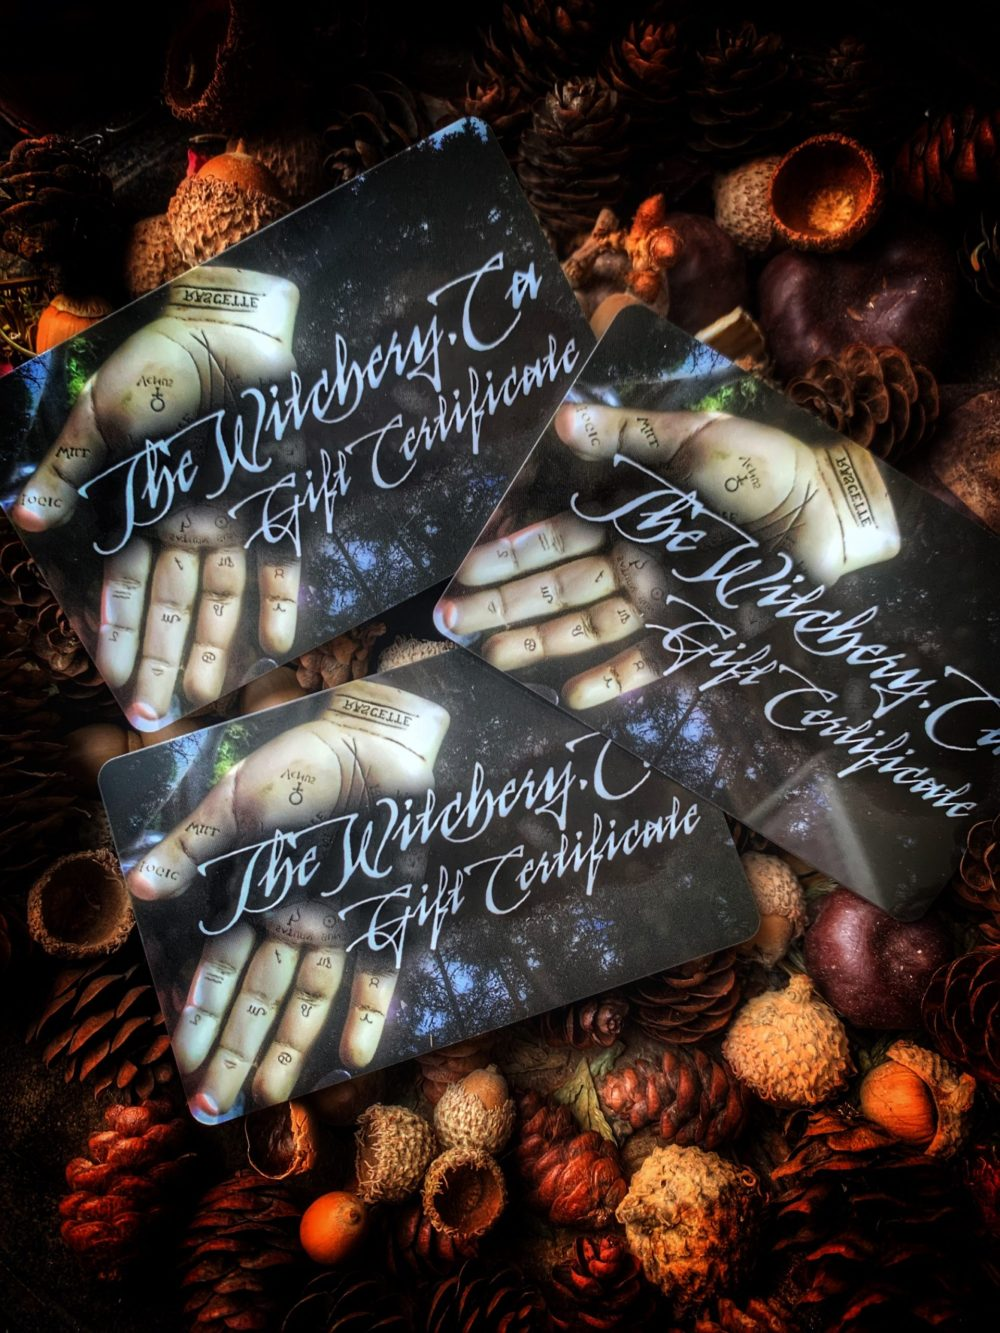 TheWitchery.Ca Gift Certificate